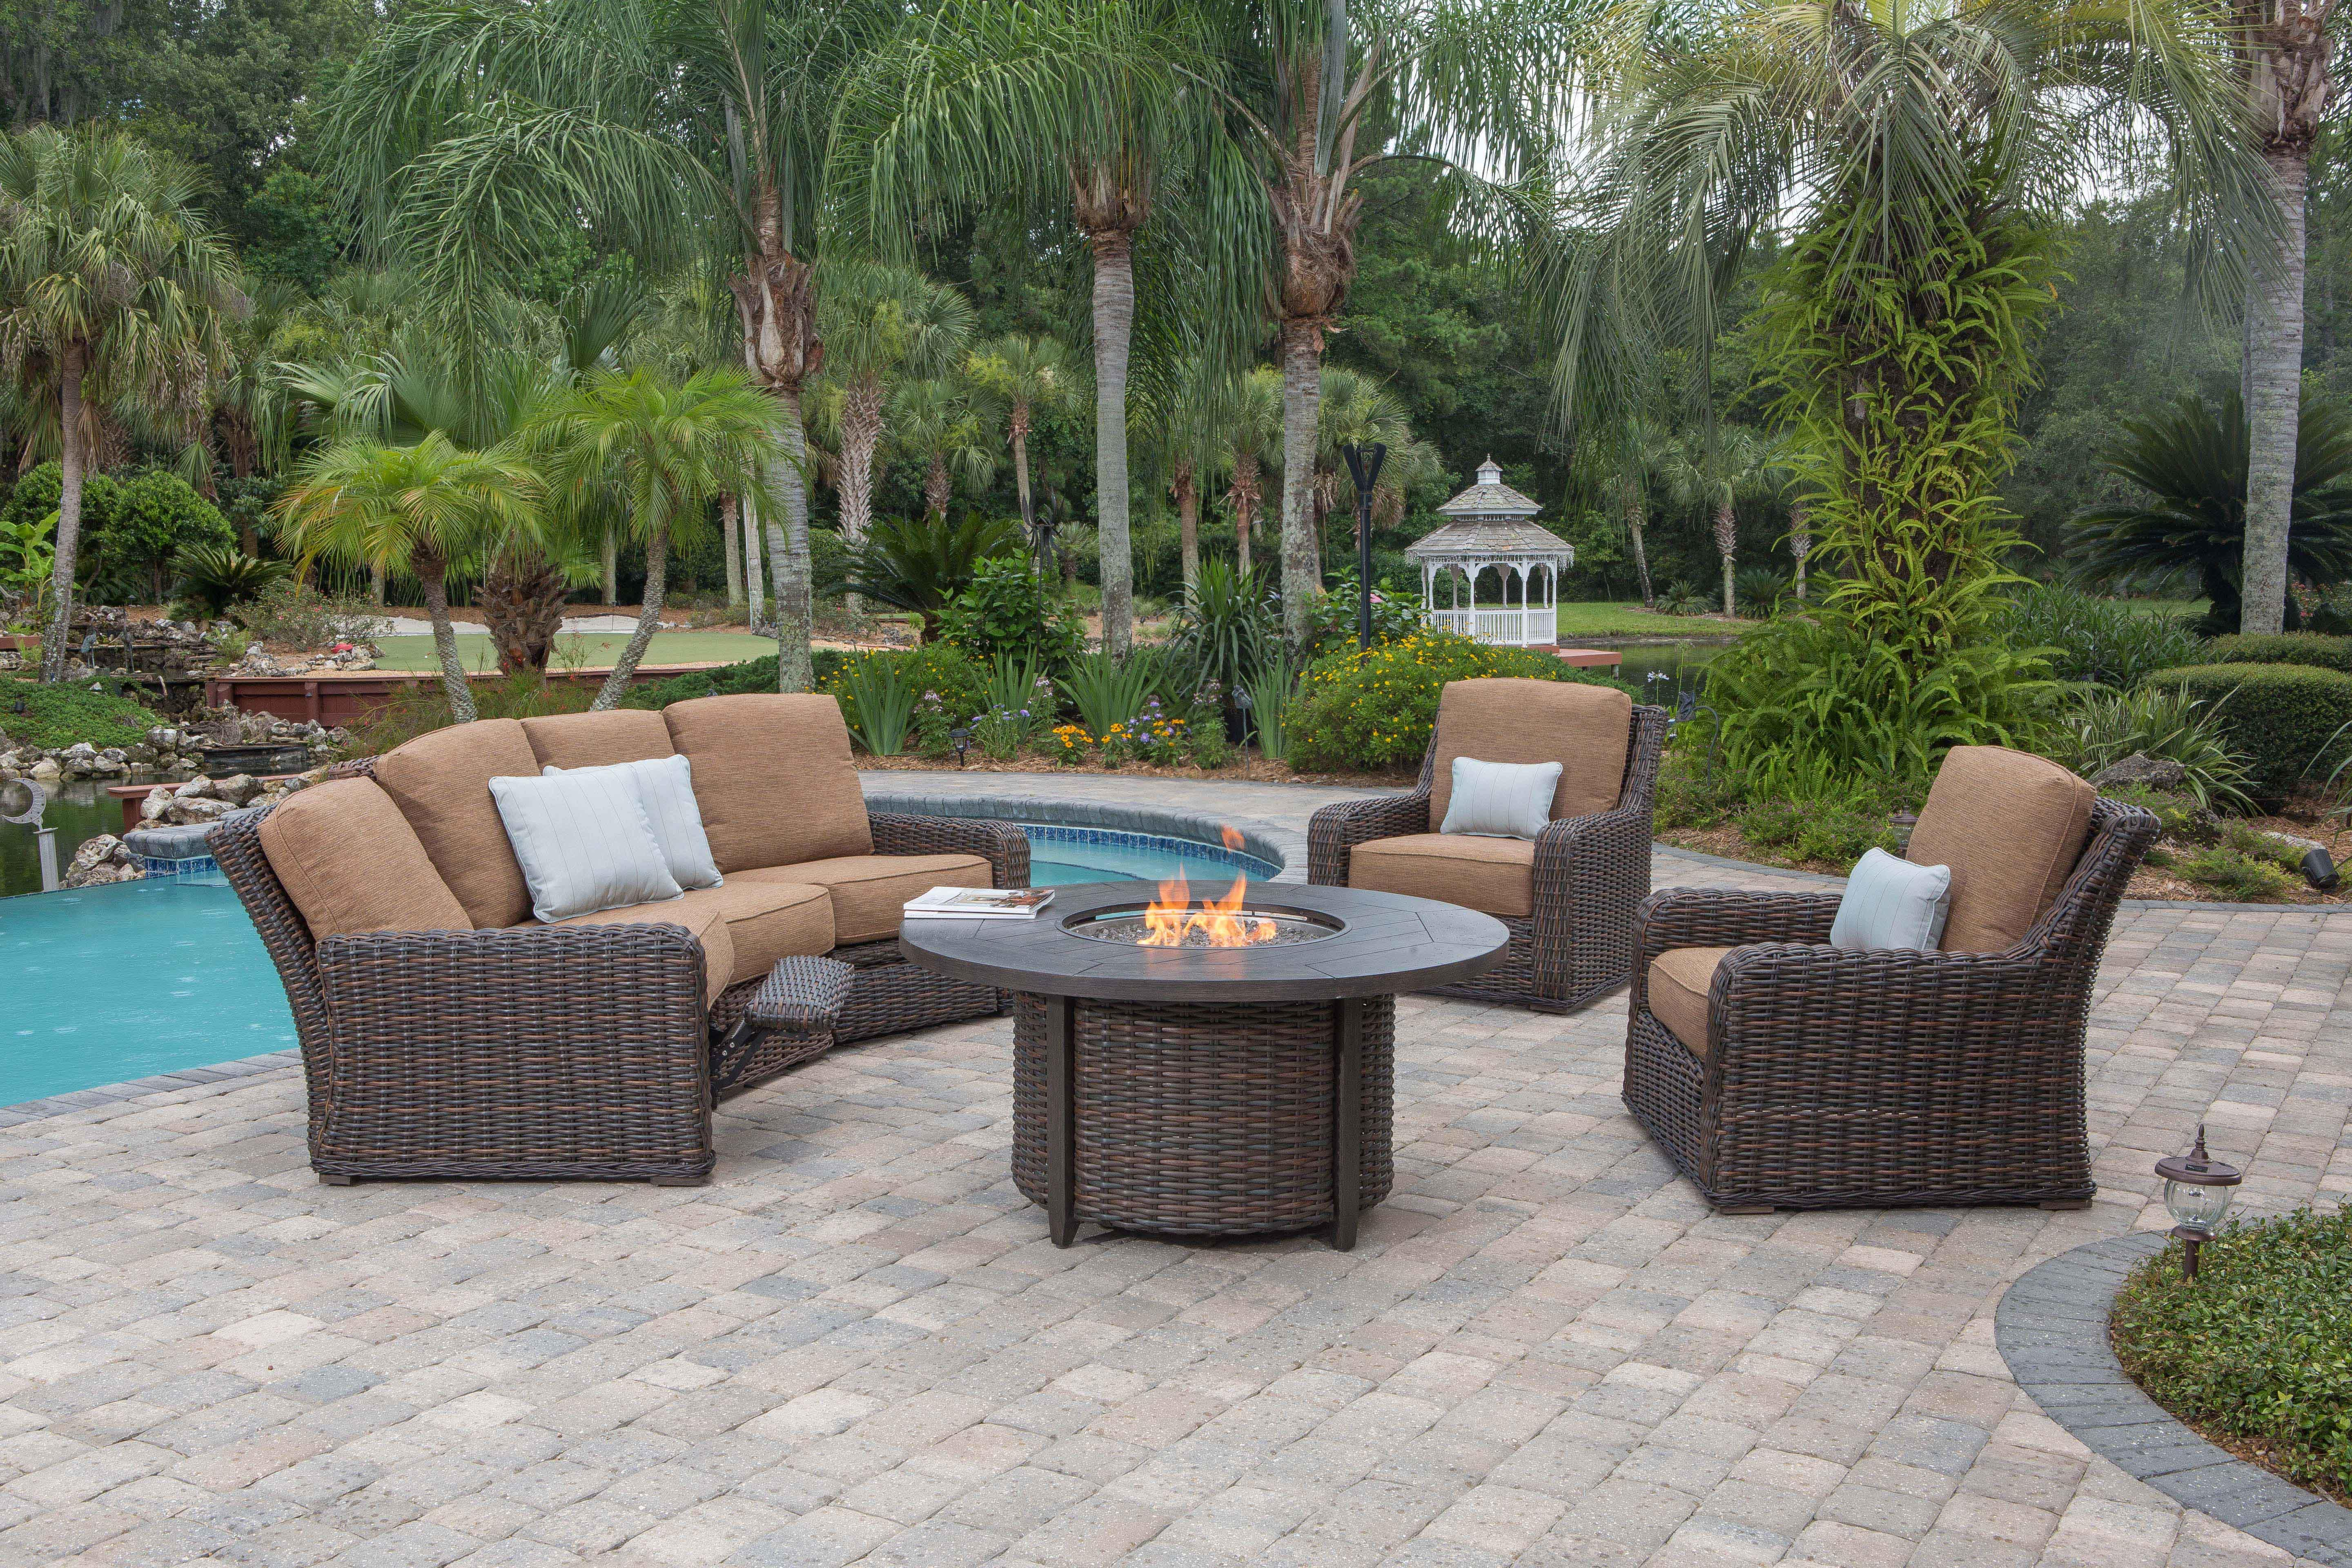 OutBack Patio Furnishings - Marble Falls image 8